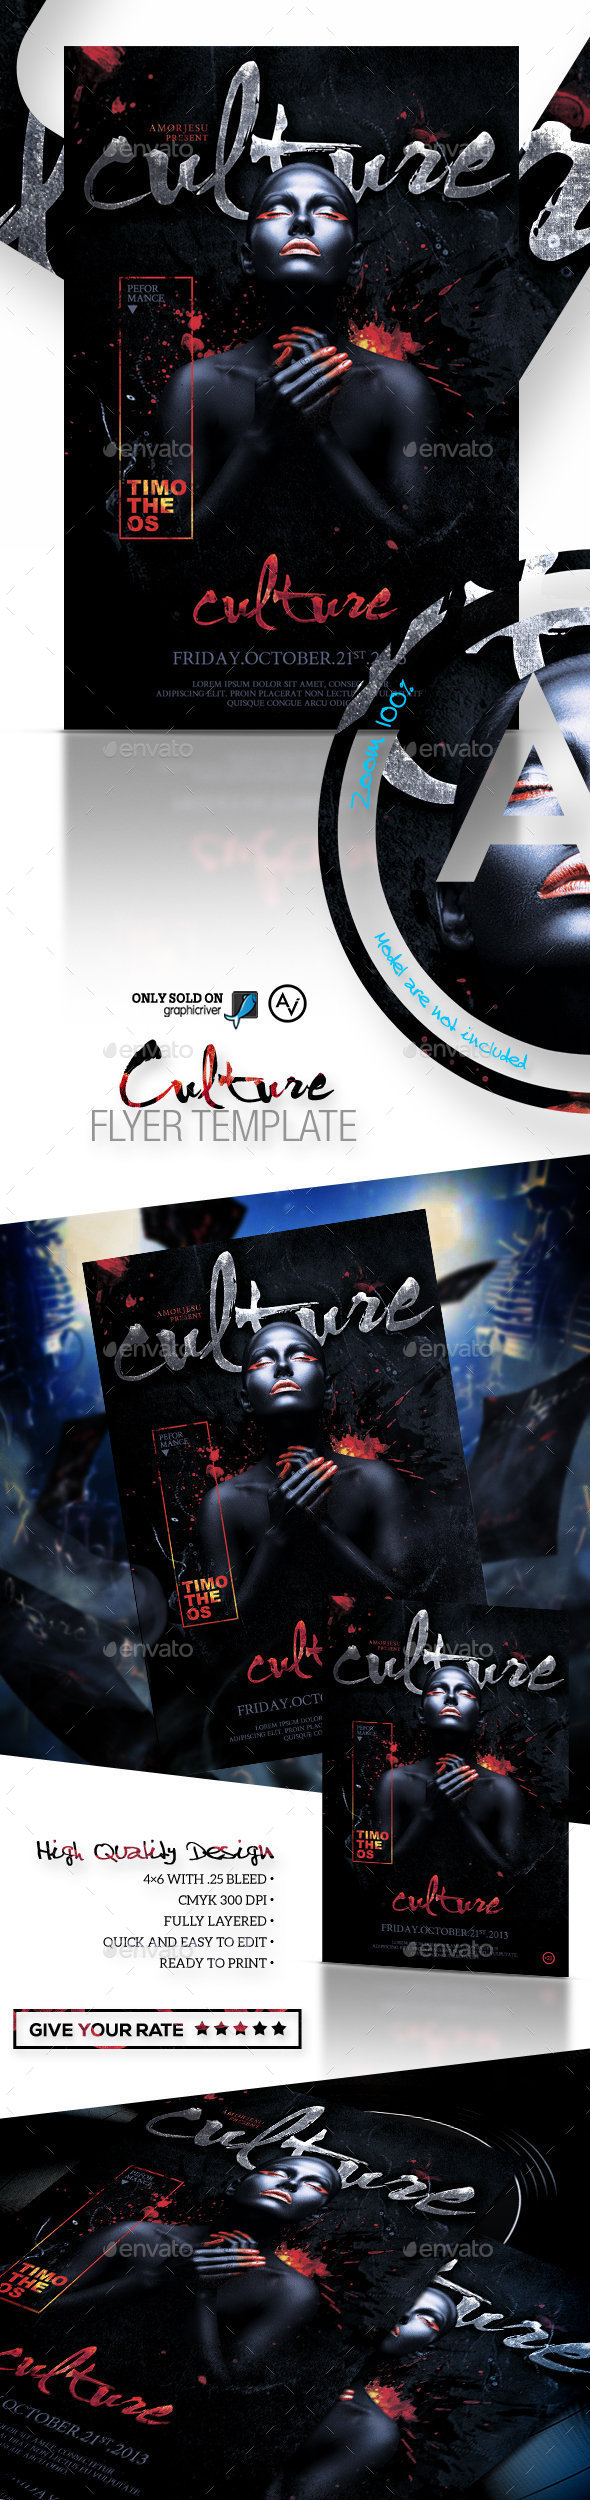 Culture Flyer Template - Clubs & Parties Events